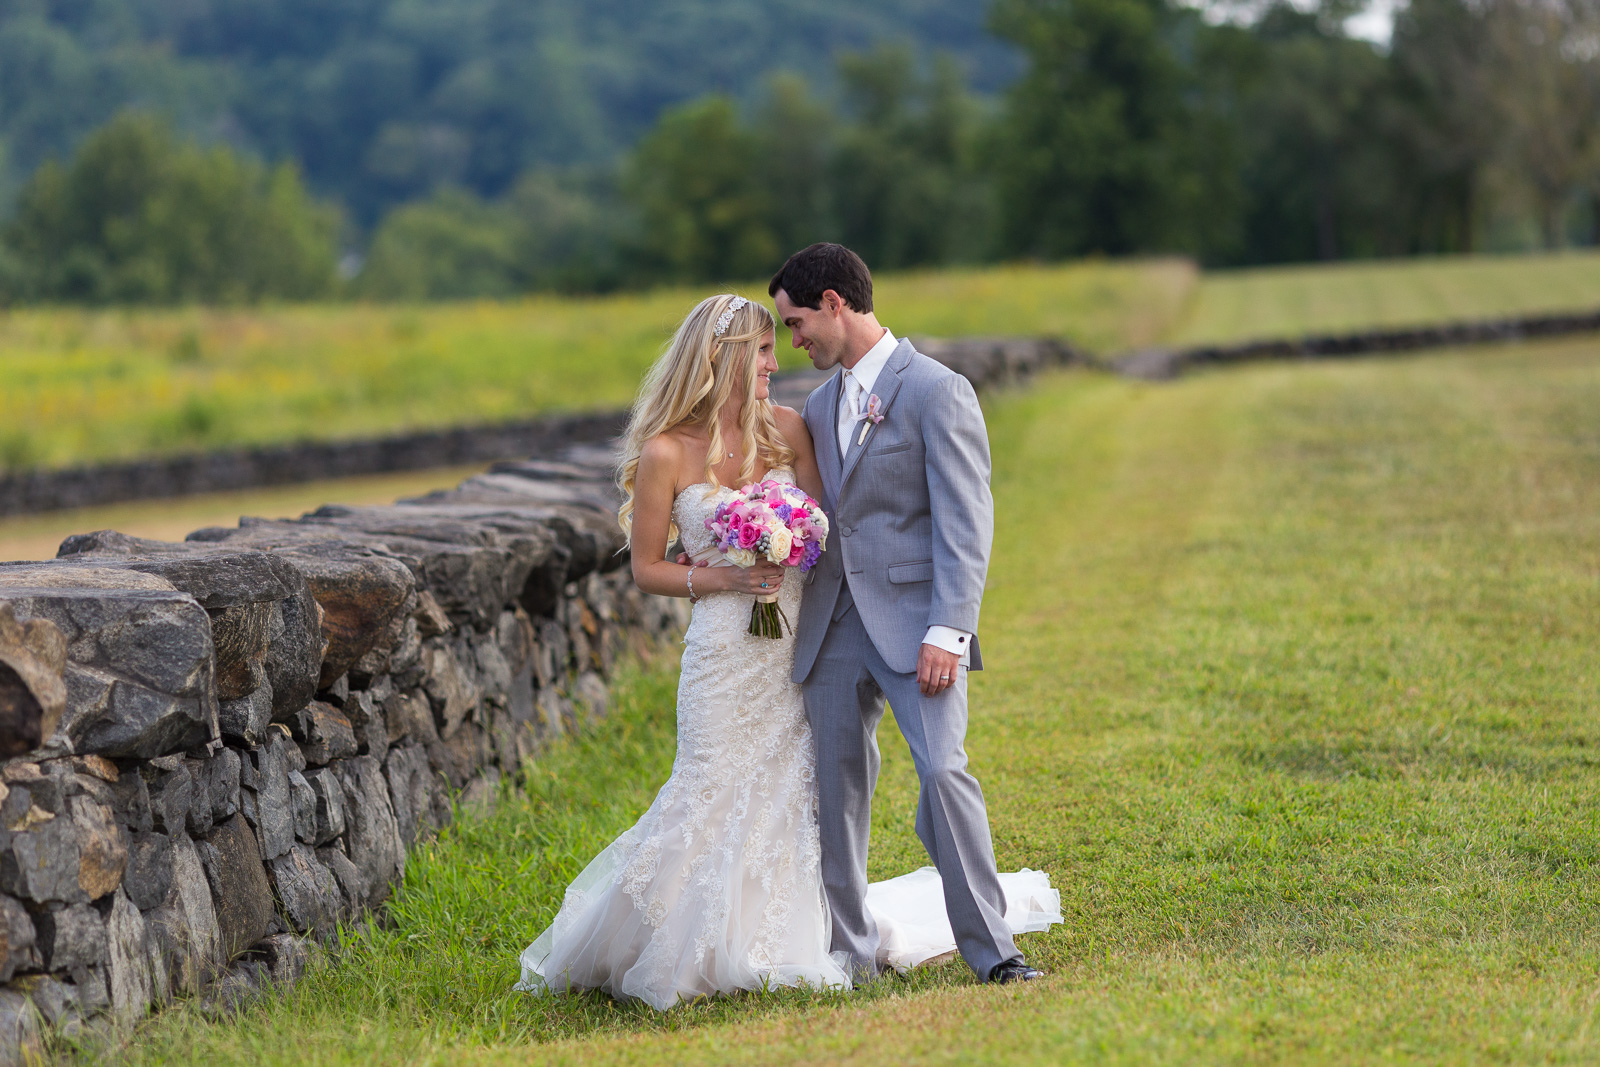 Bride and groom at Brandywine Creek State Park